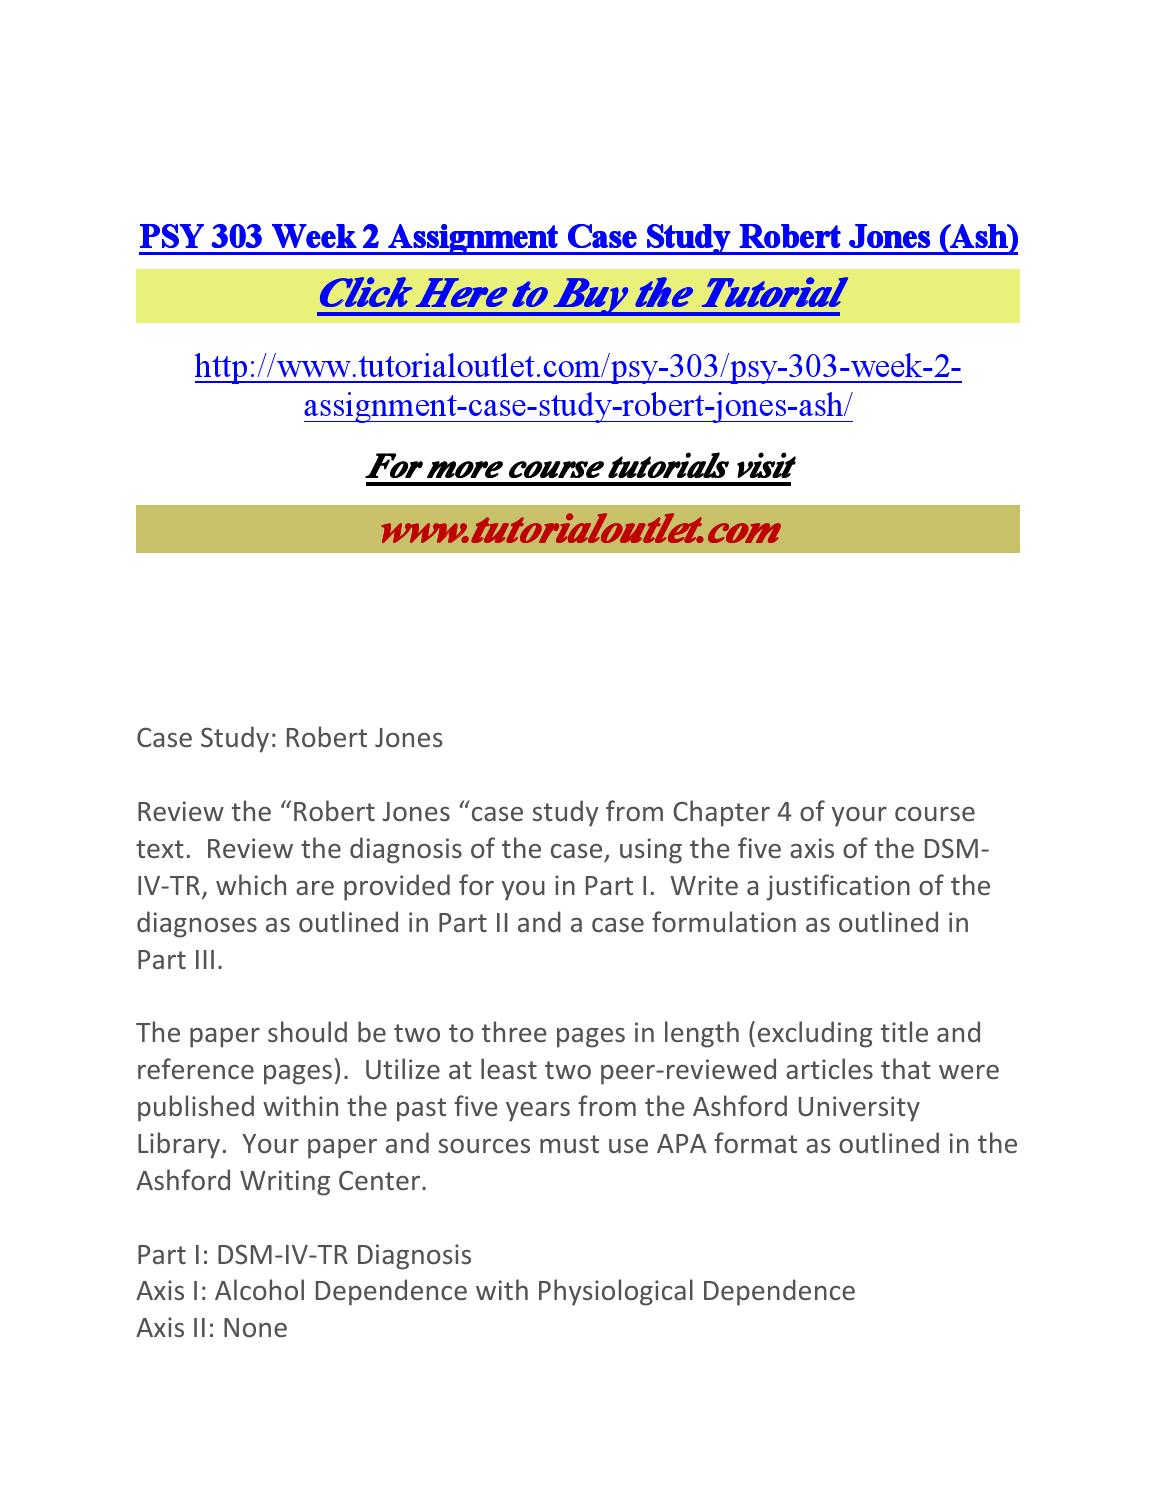 Psy 303 week 2 assignment case study robert jones by